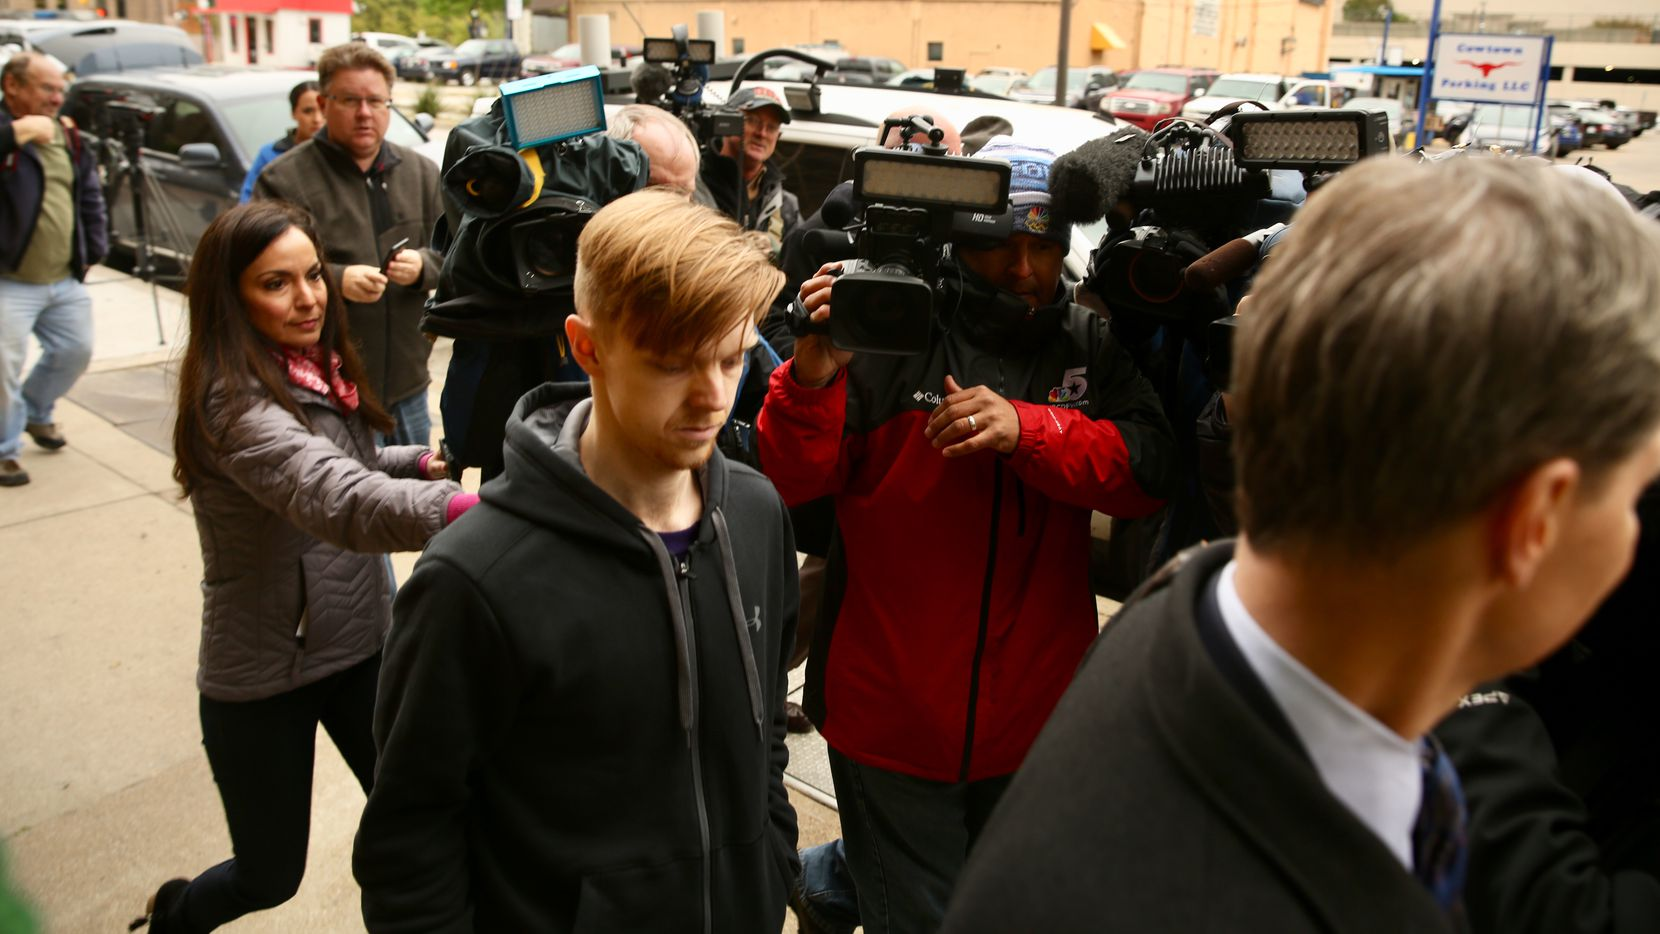 Affluenza teen' Ethan Couch released from jail days before